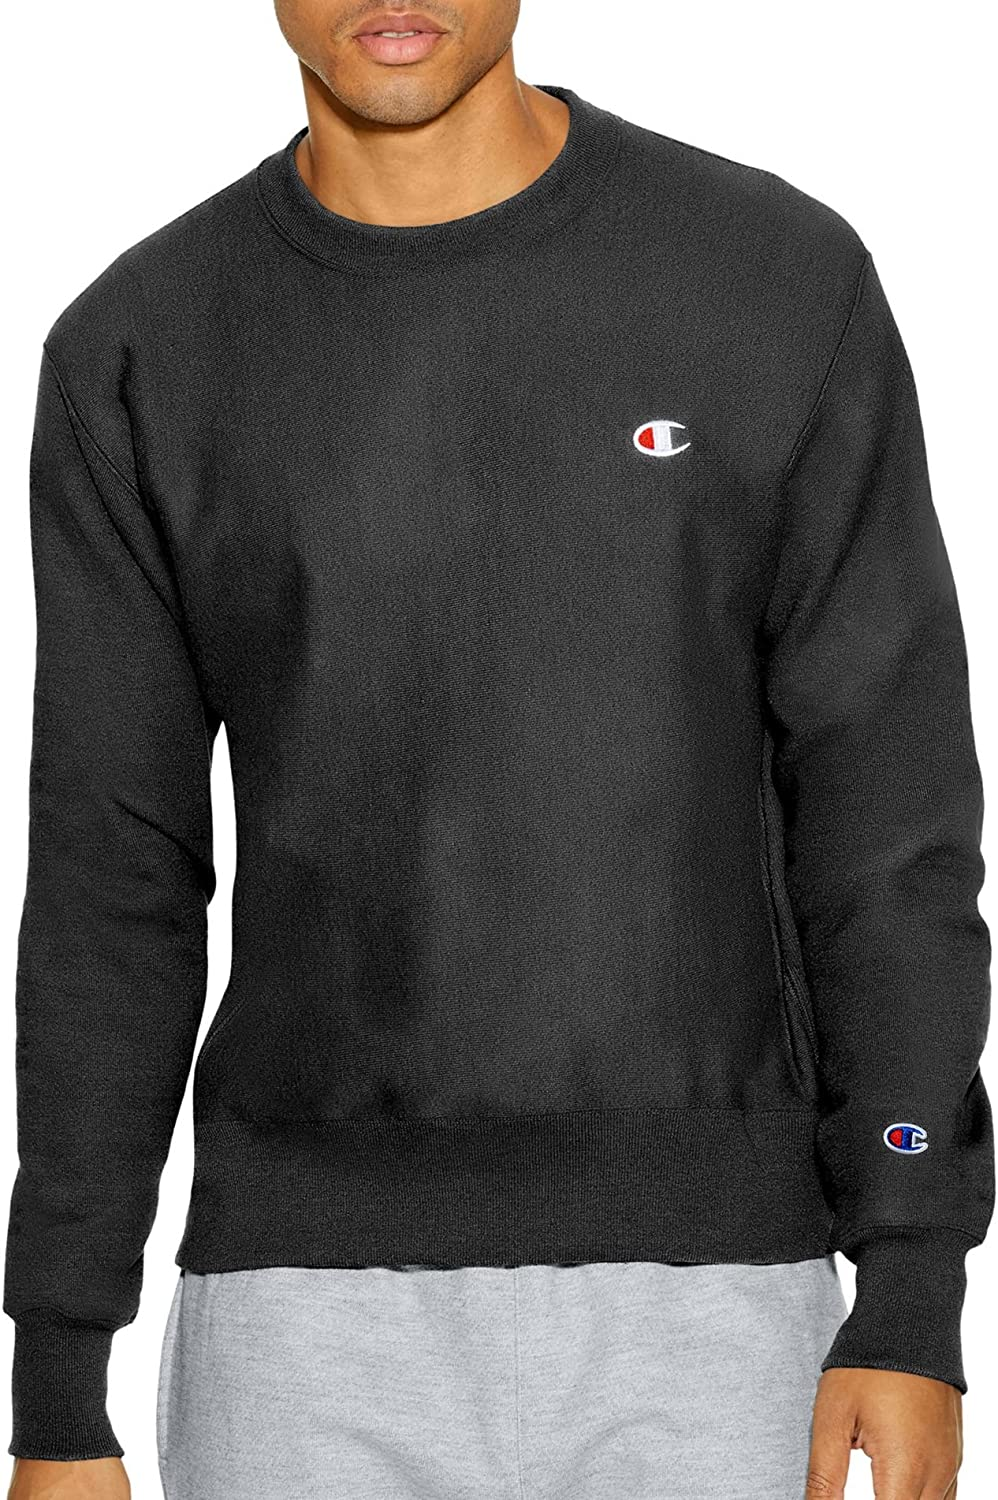 Same day shipping Champion Men's Reverse Weave Crew Clearance SALE! Limited time!